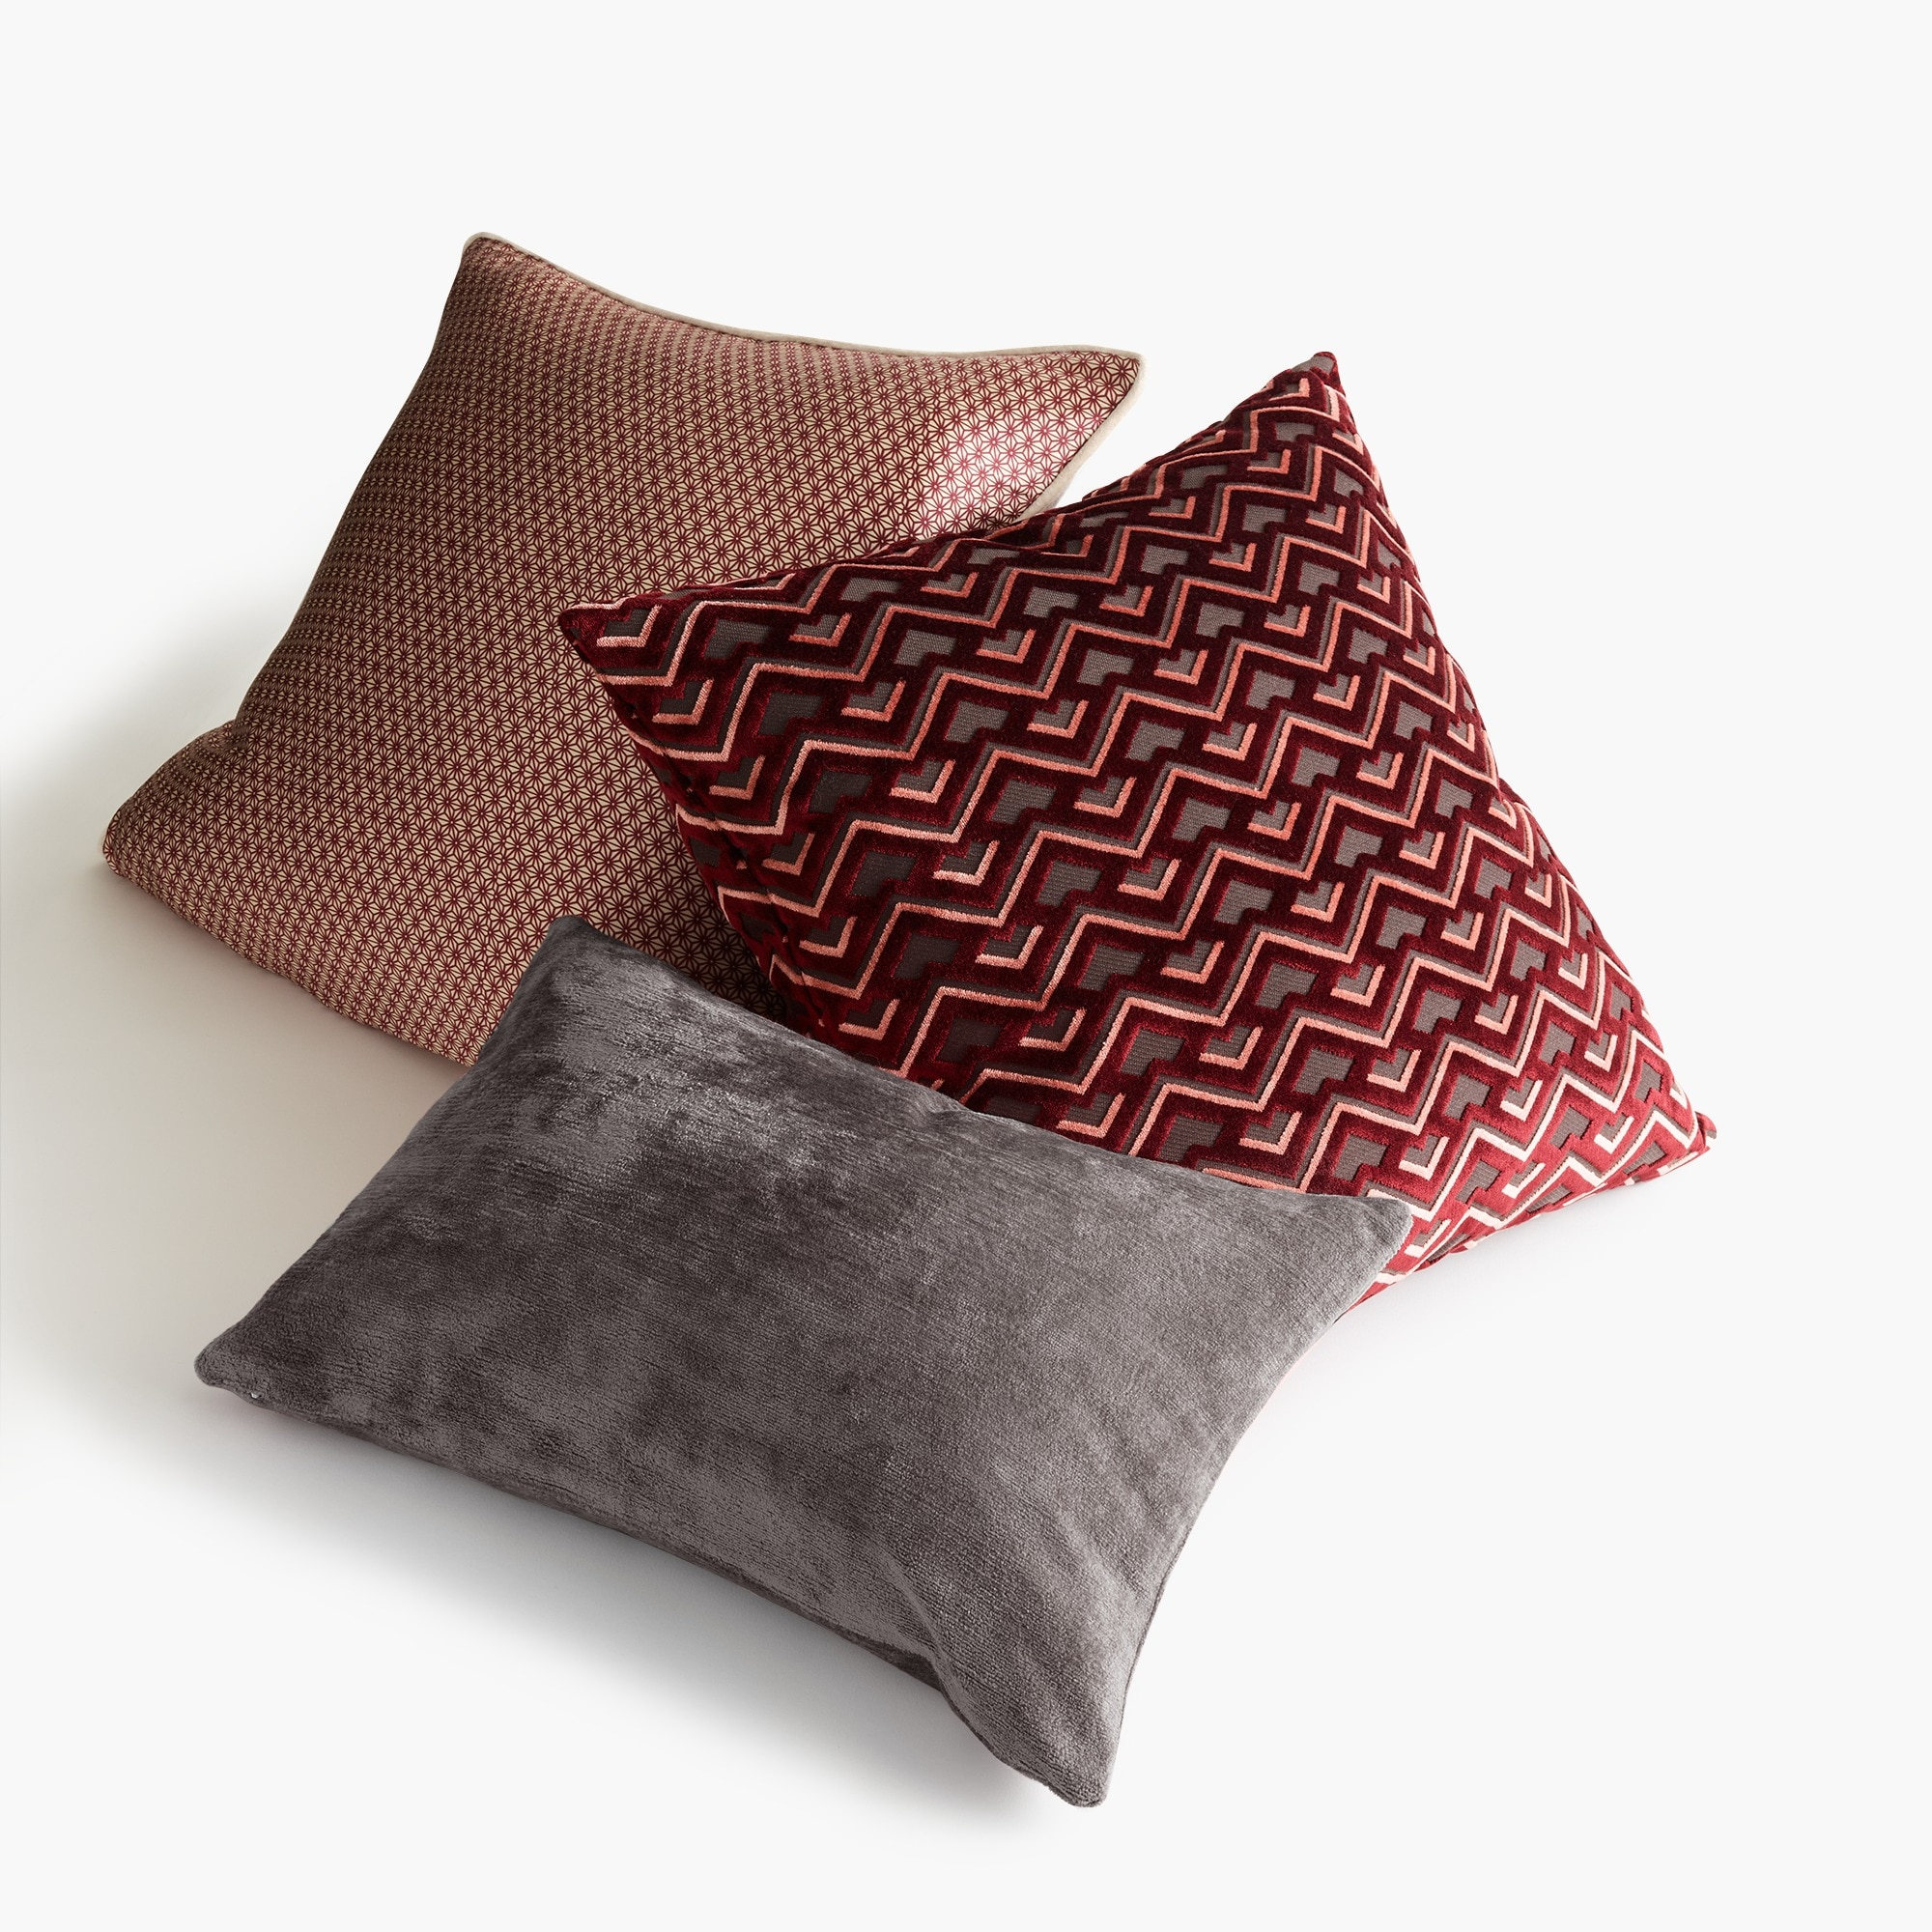 Image 3 for Compono geometric star pillow